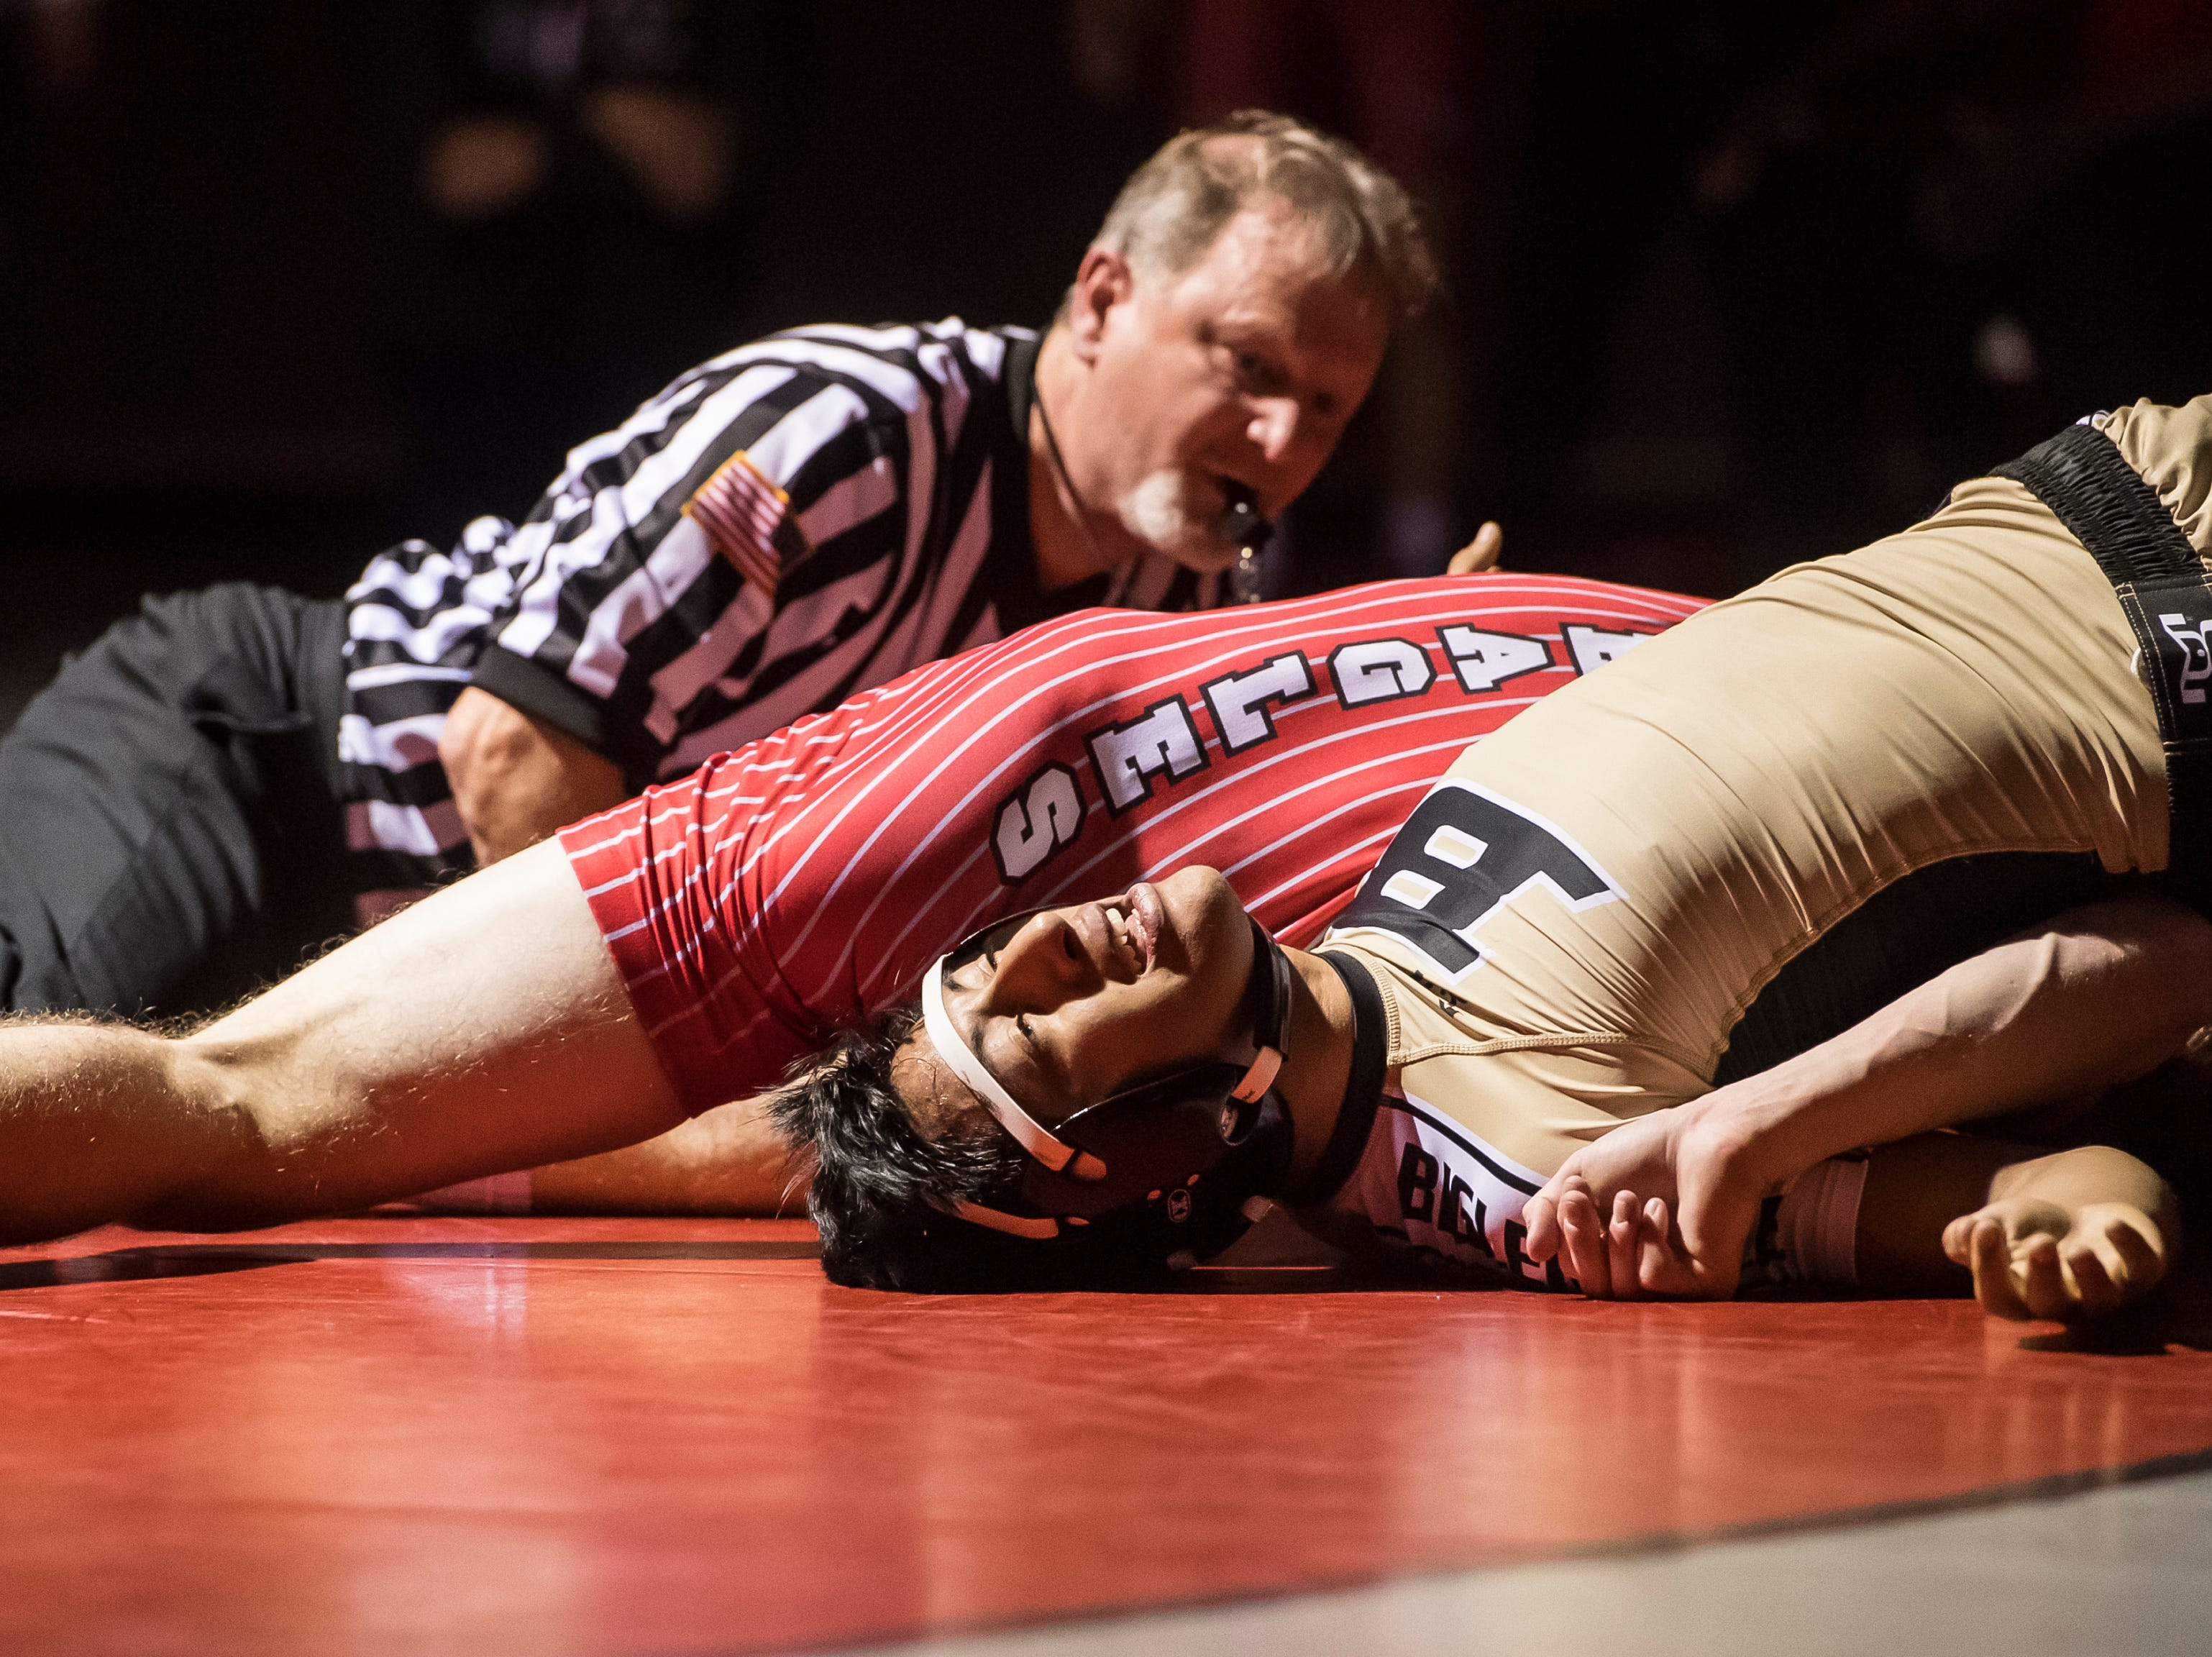 Bermudian Springs' Tanner Althoff, top, pins Biglerville's Isaac Sierra-Soto in the 152-pound bout at Bermudian Springs High School on December 13, 2018. The Eagles won the duel 51-27.